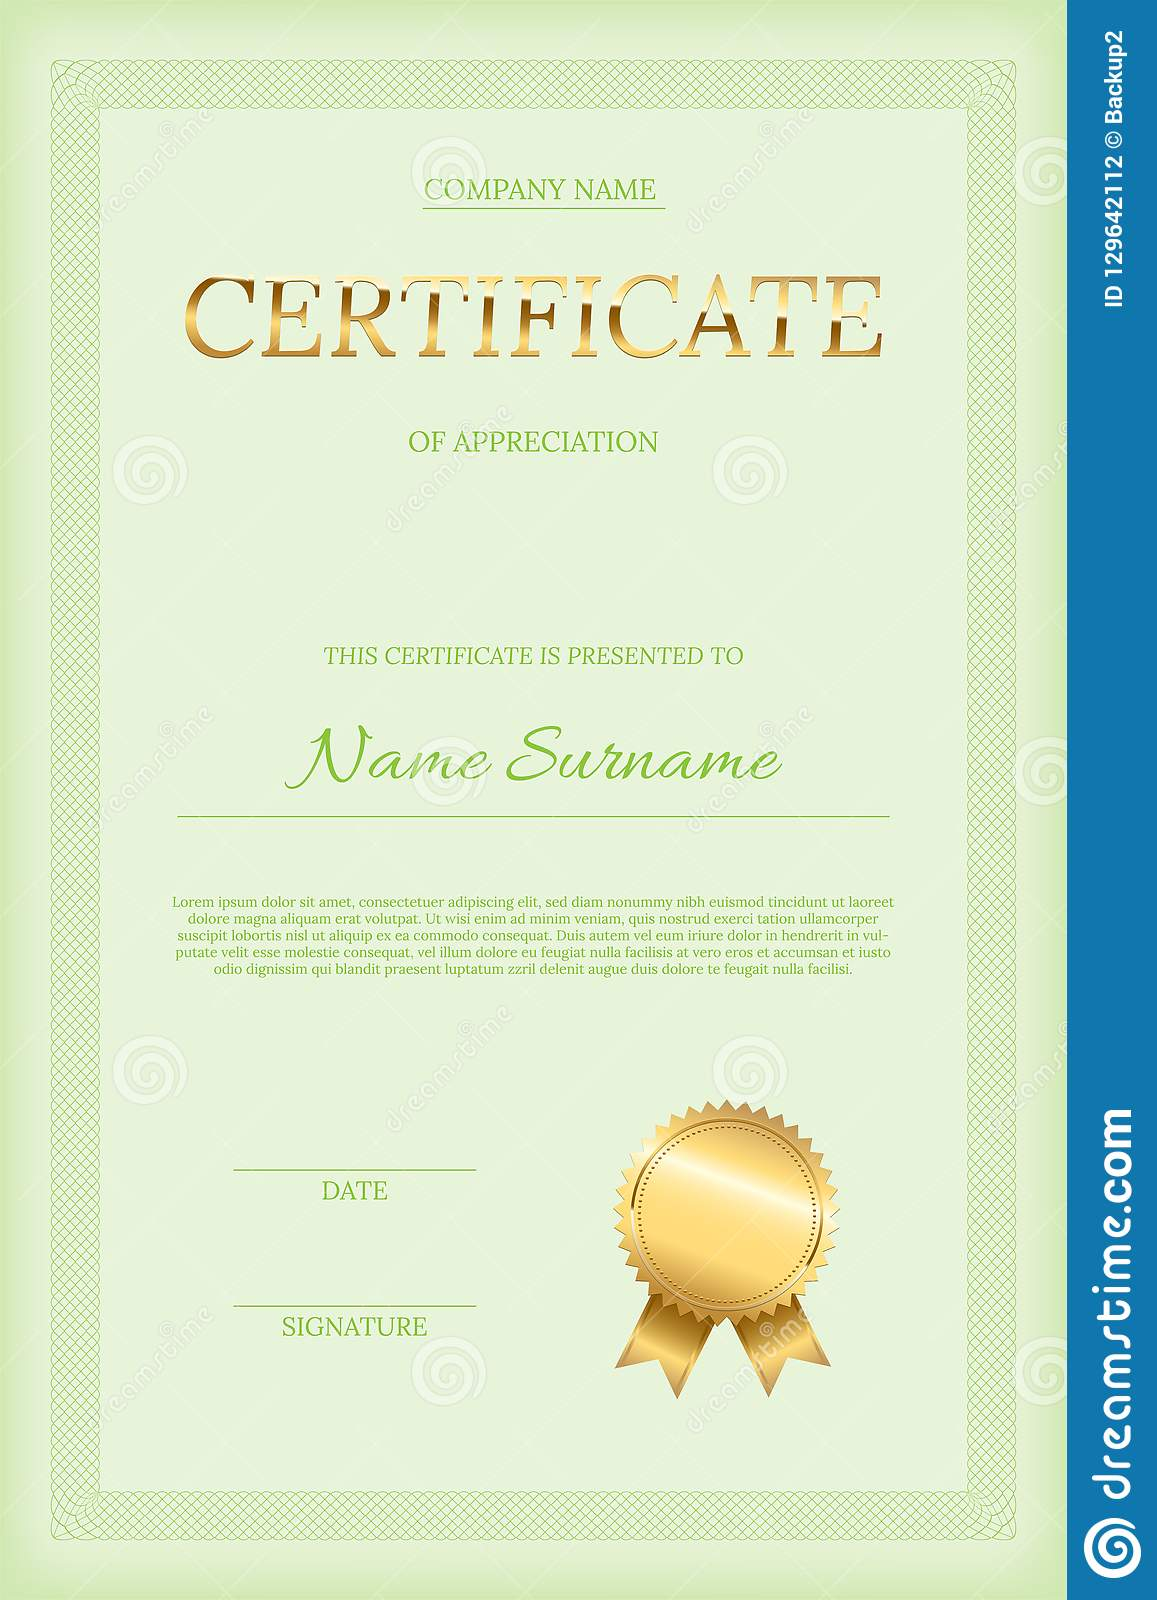 Golden Certificate Word With Seal Green Text And Guilloche